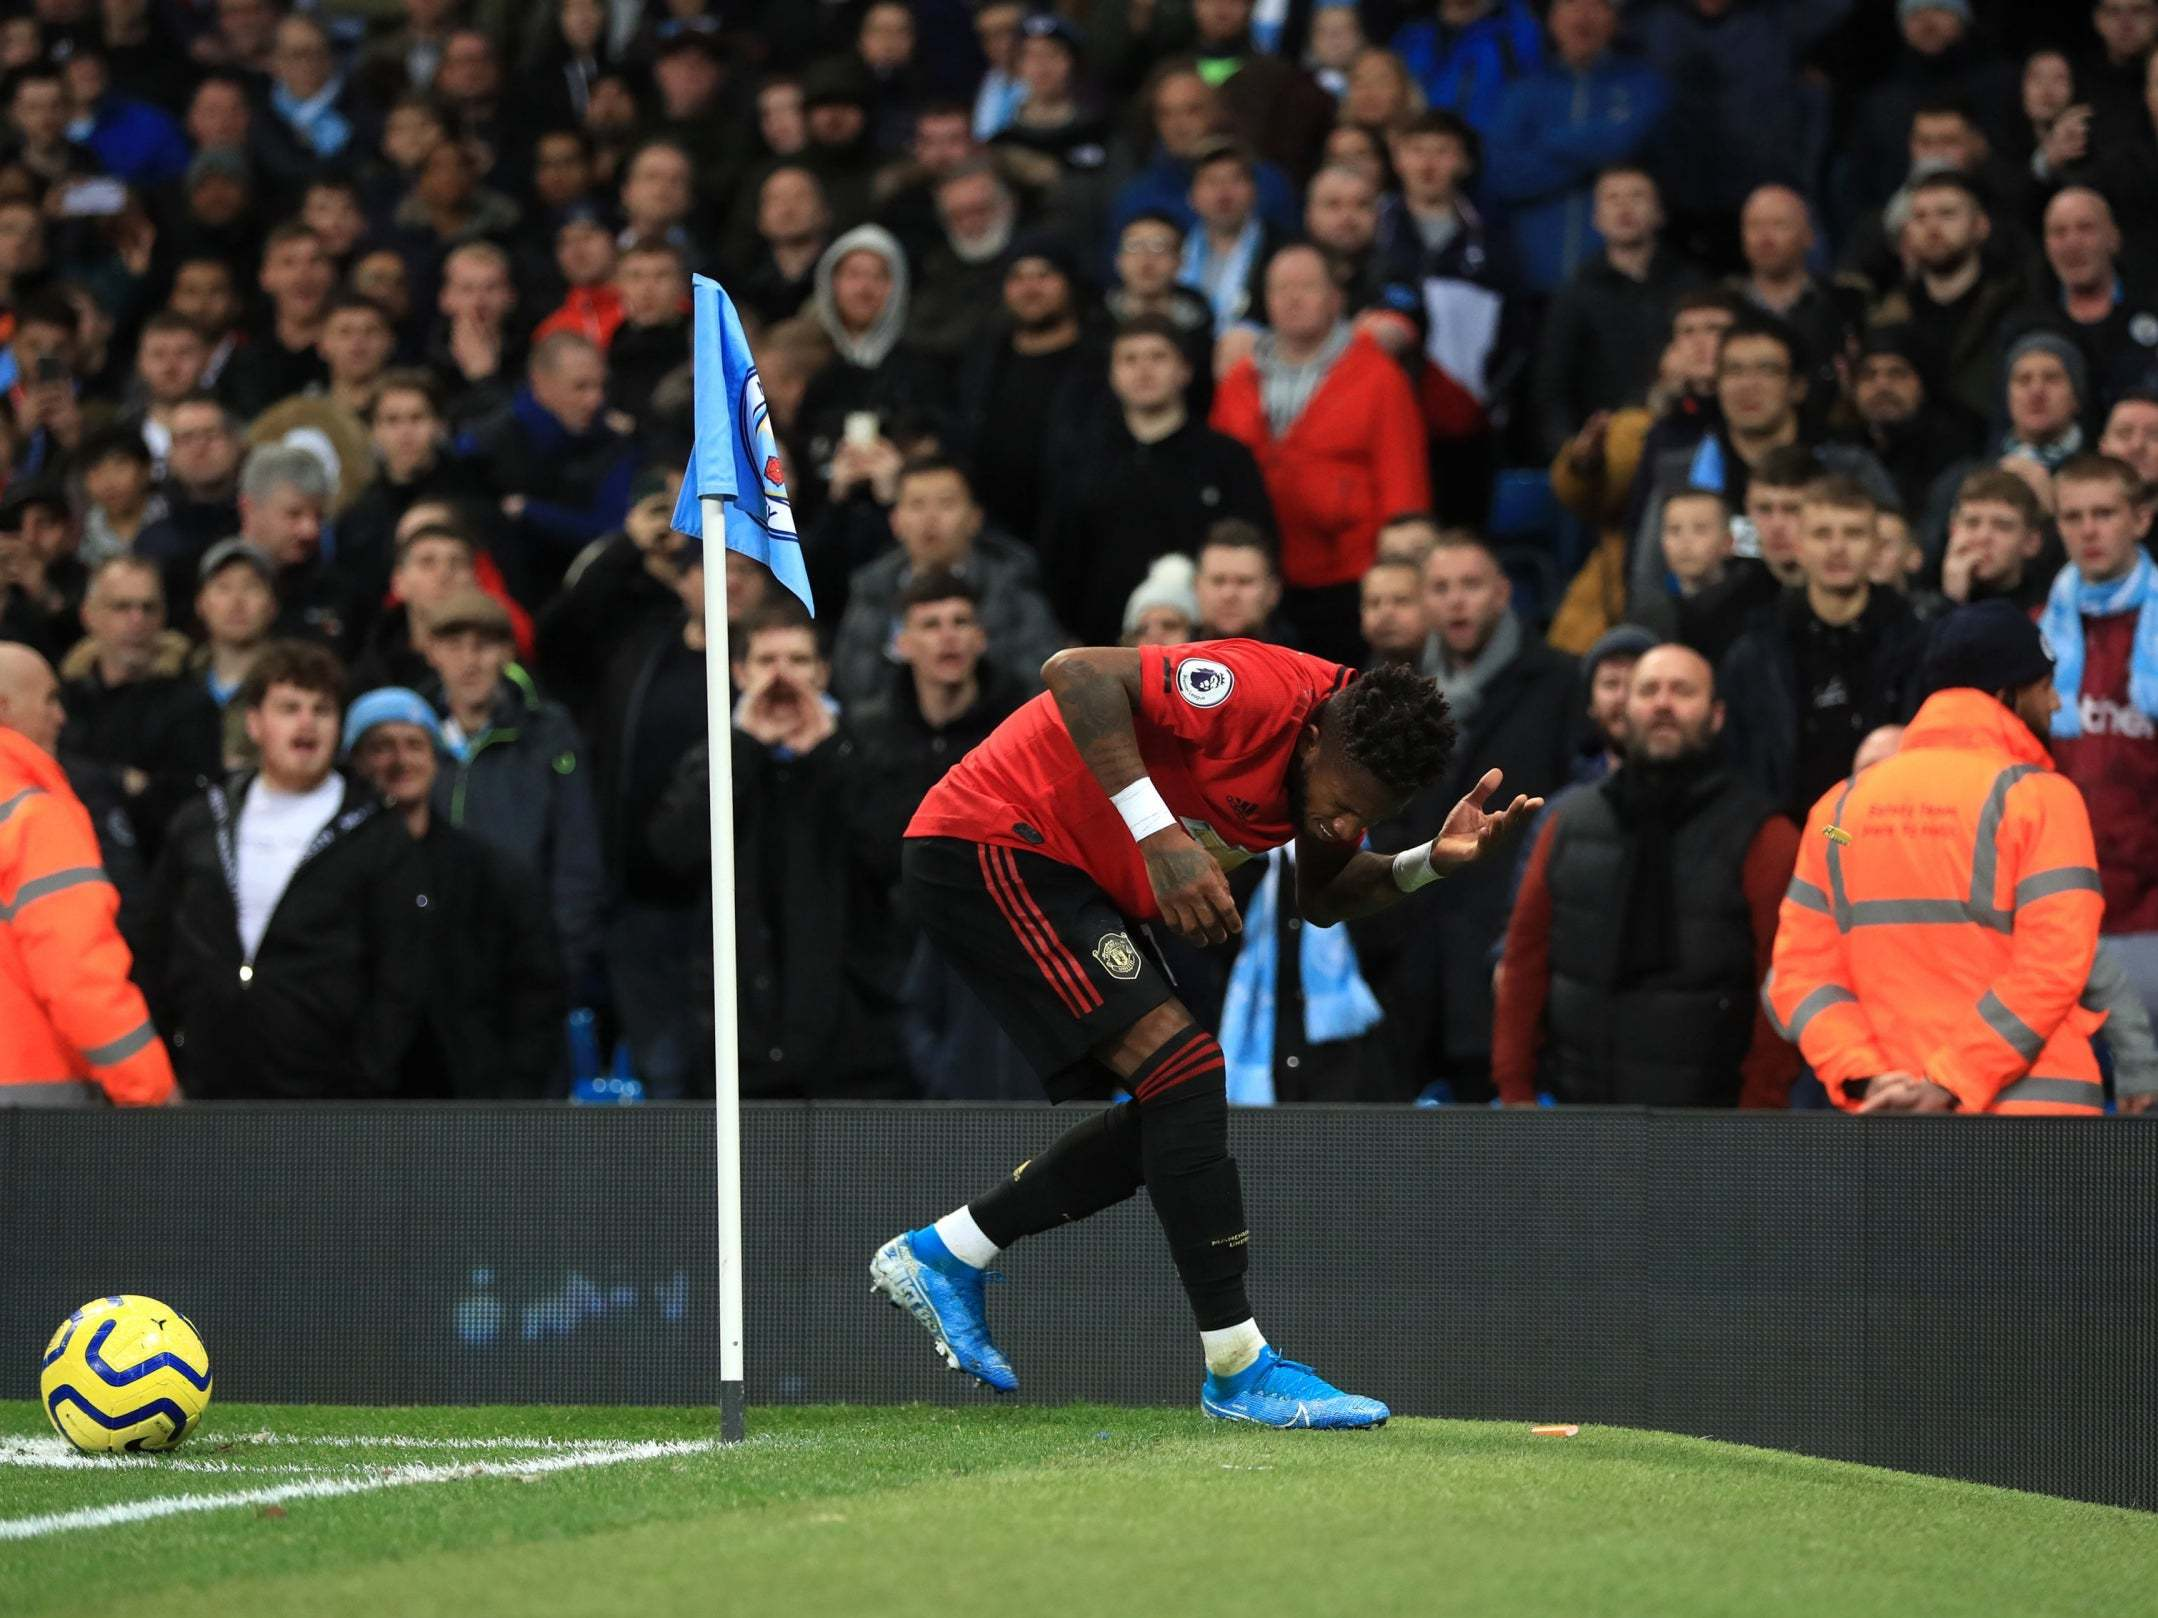 Man City vs Man United: Fred struck by object that appeared to be thrown by City fan during derby